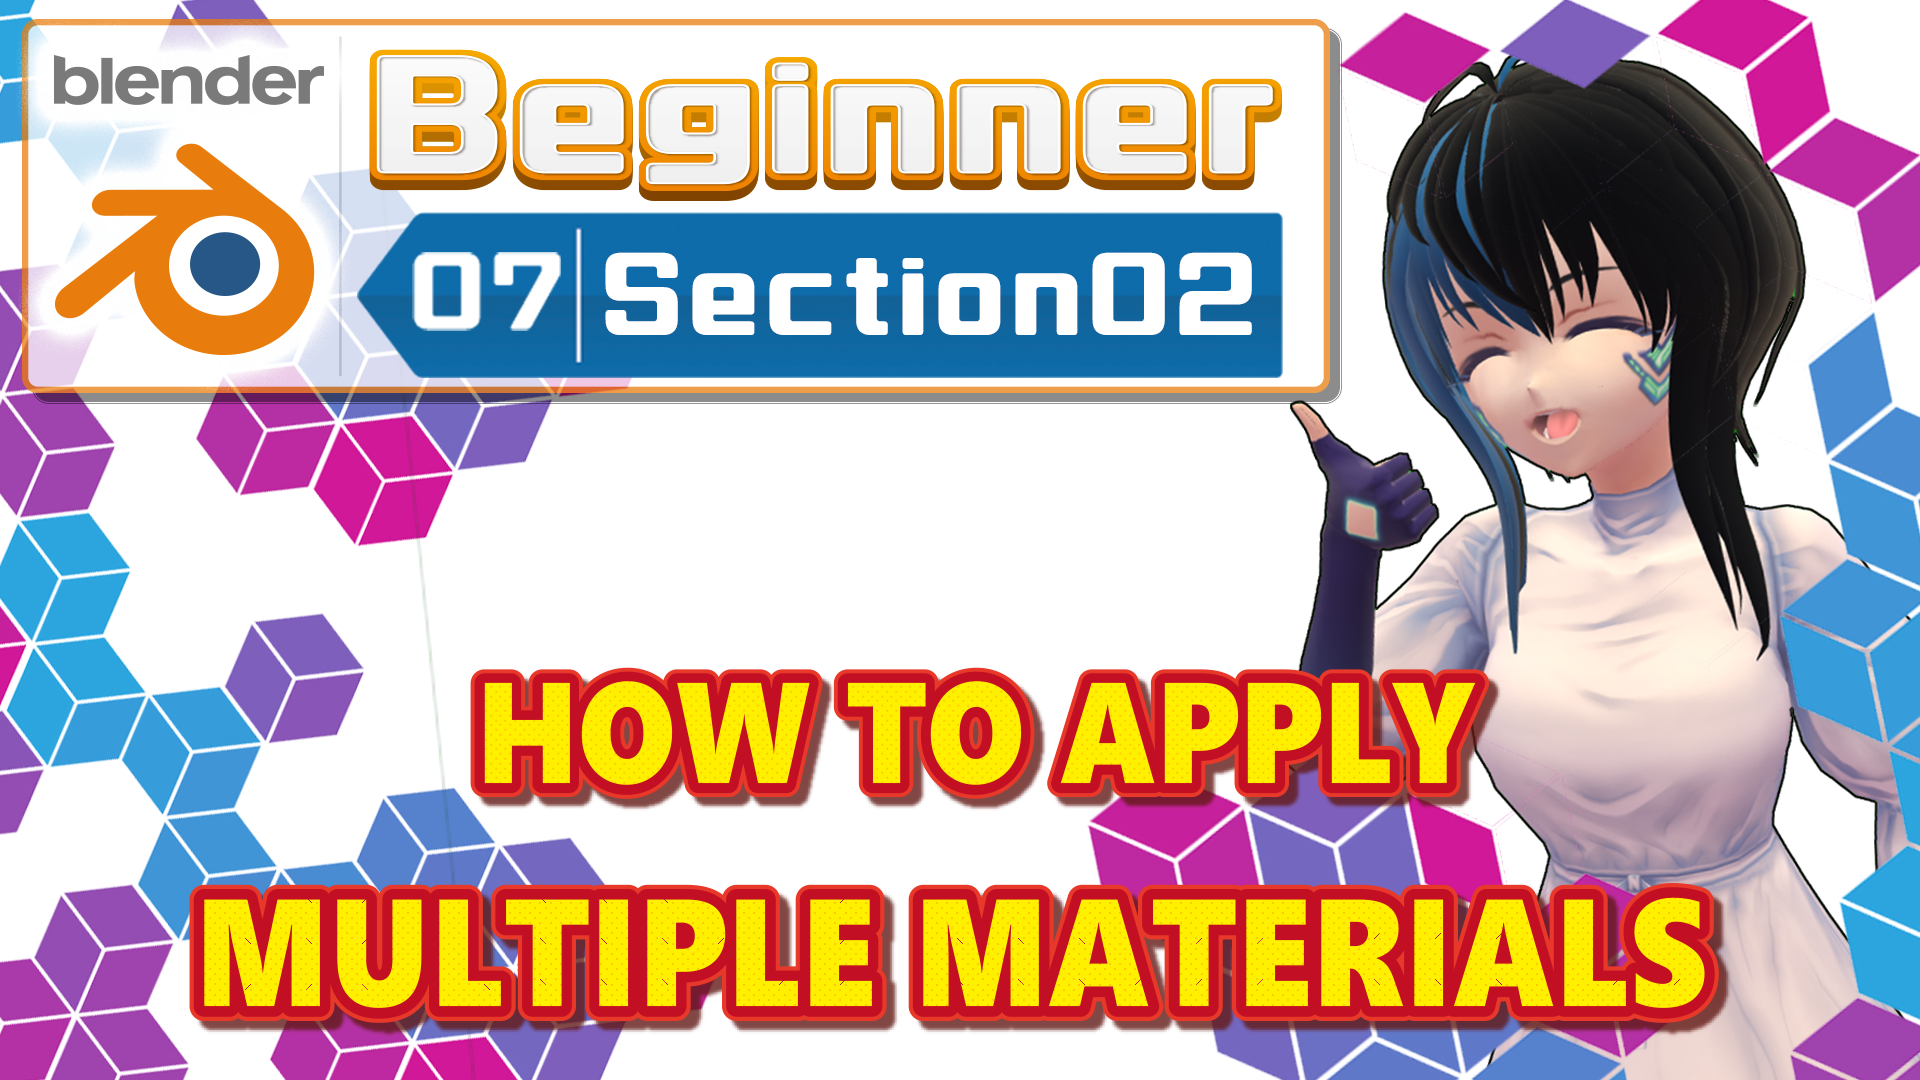 HOW TO APPLY MULTIPLE MATERIALS